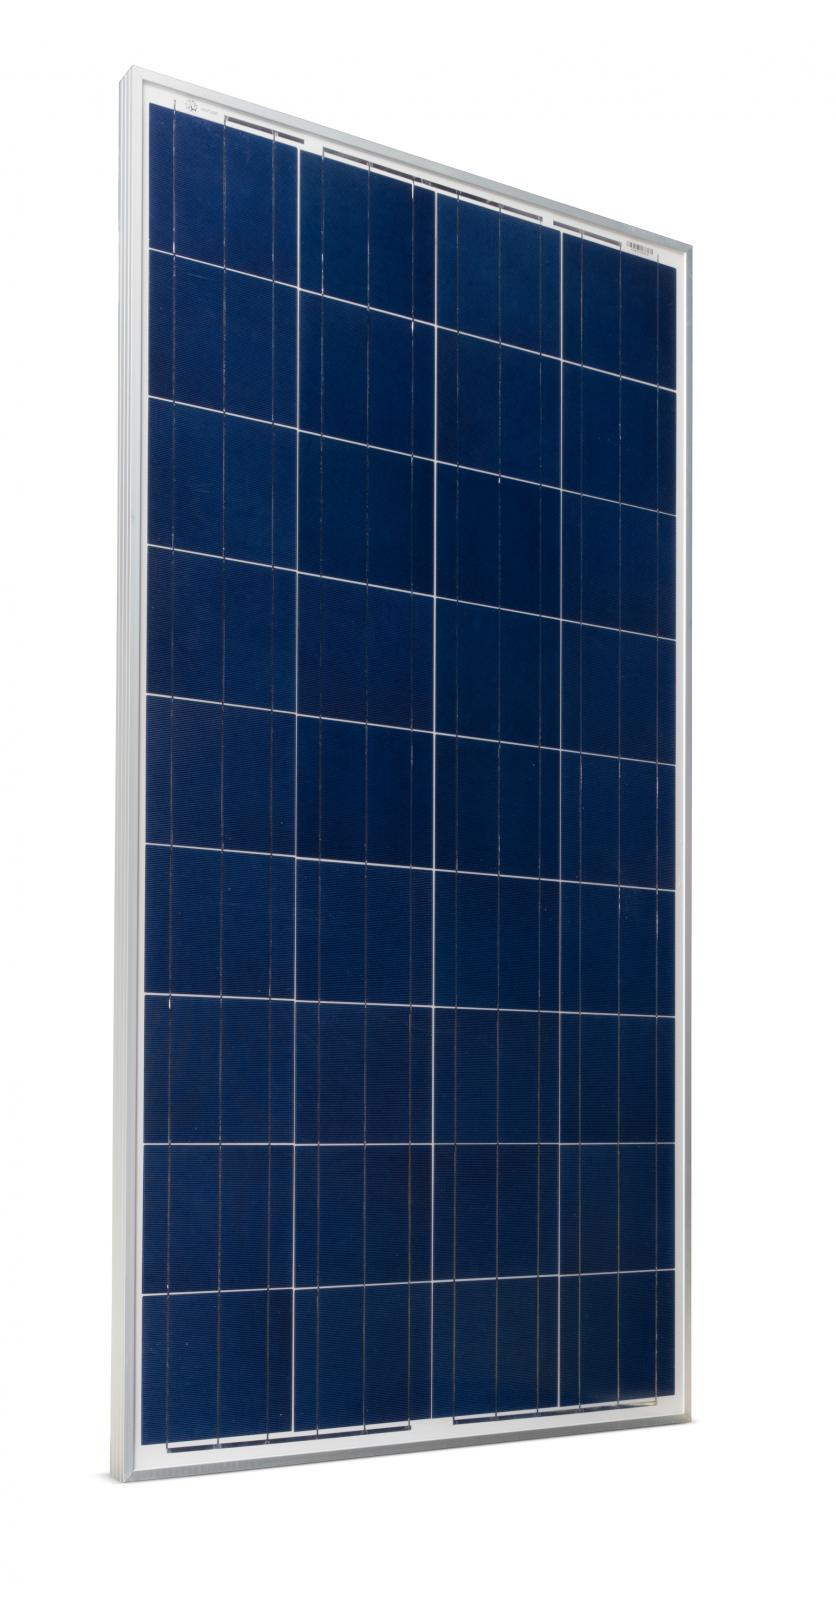 how to connect photovoltaic panels to grid